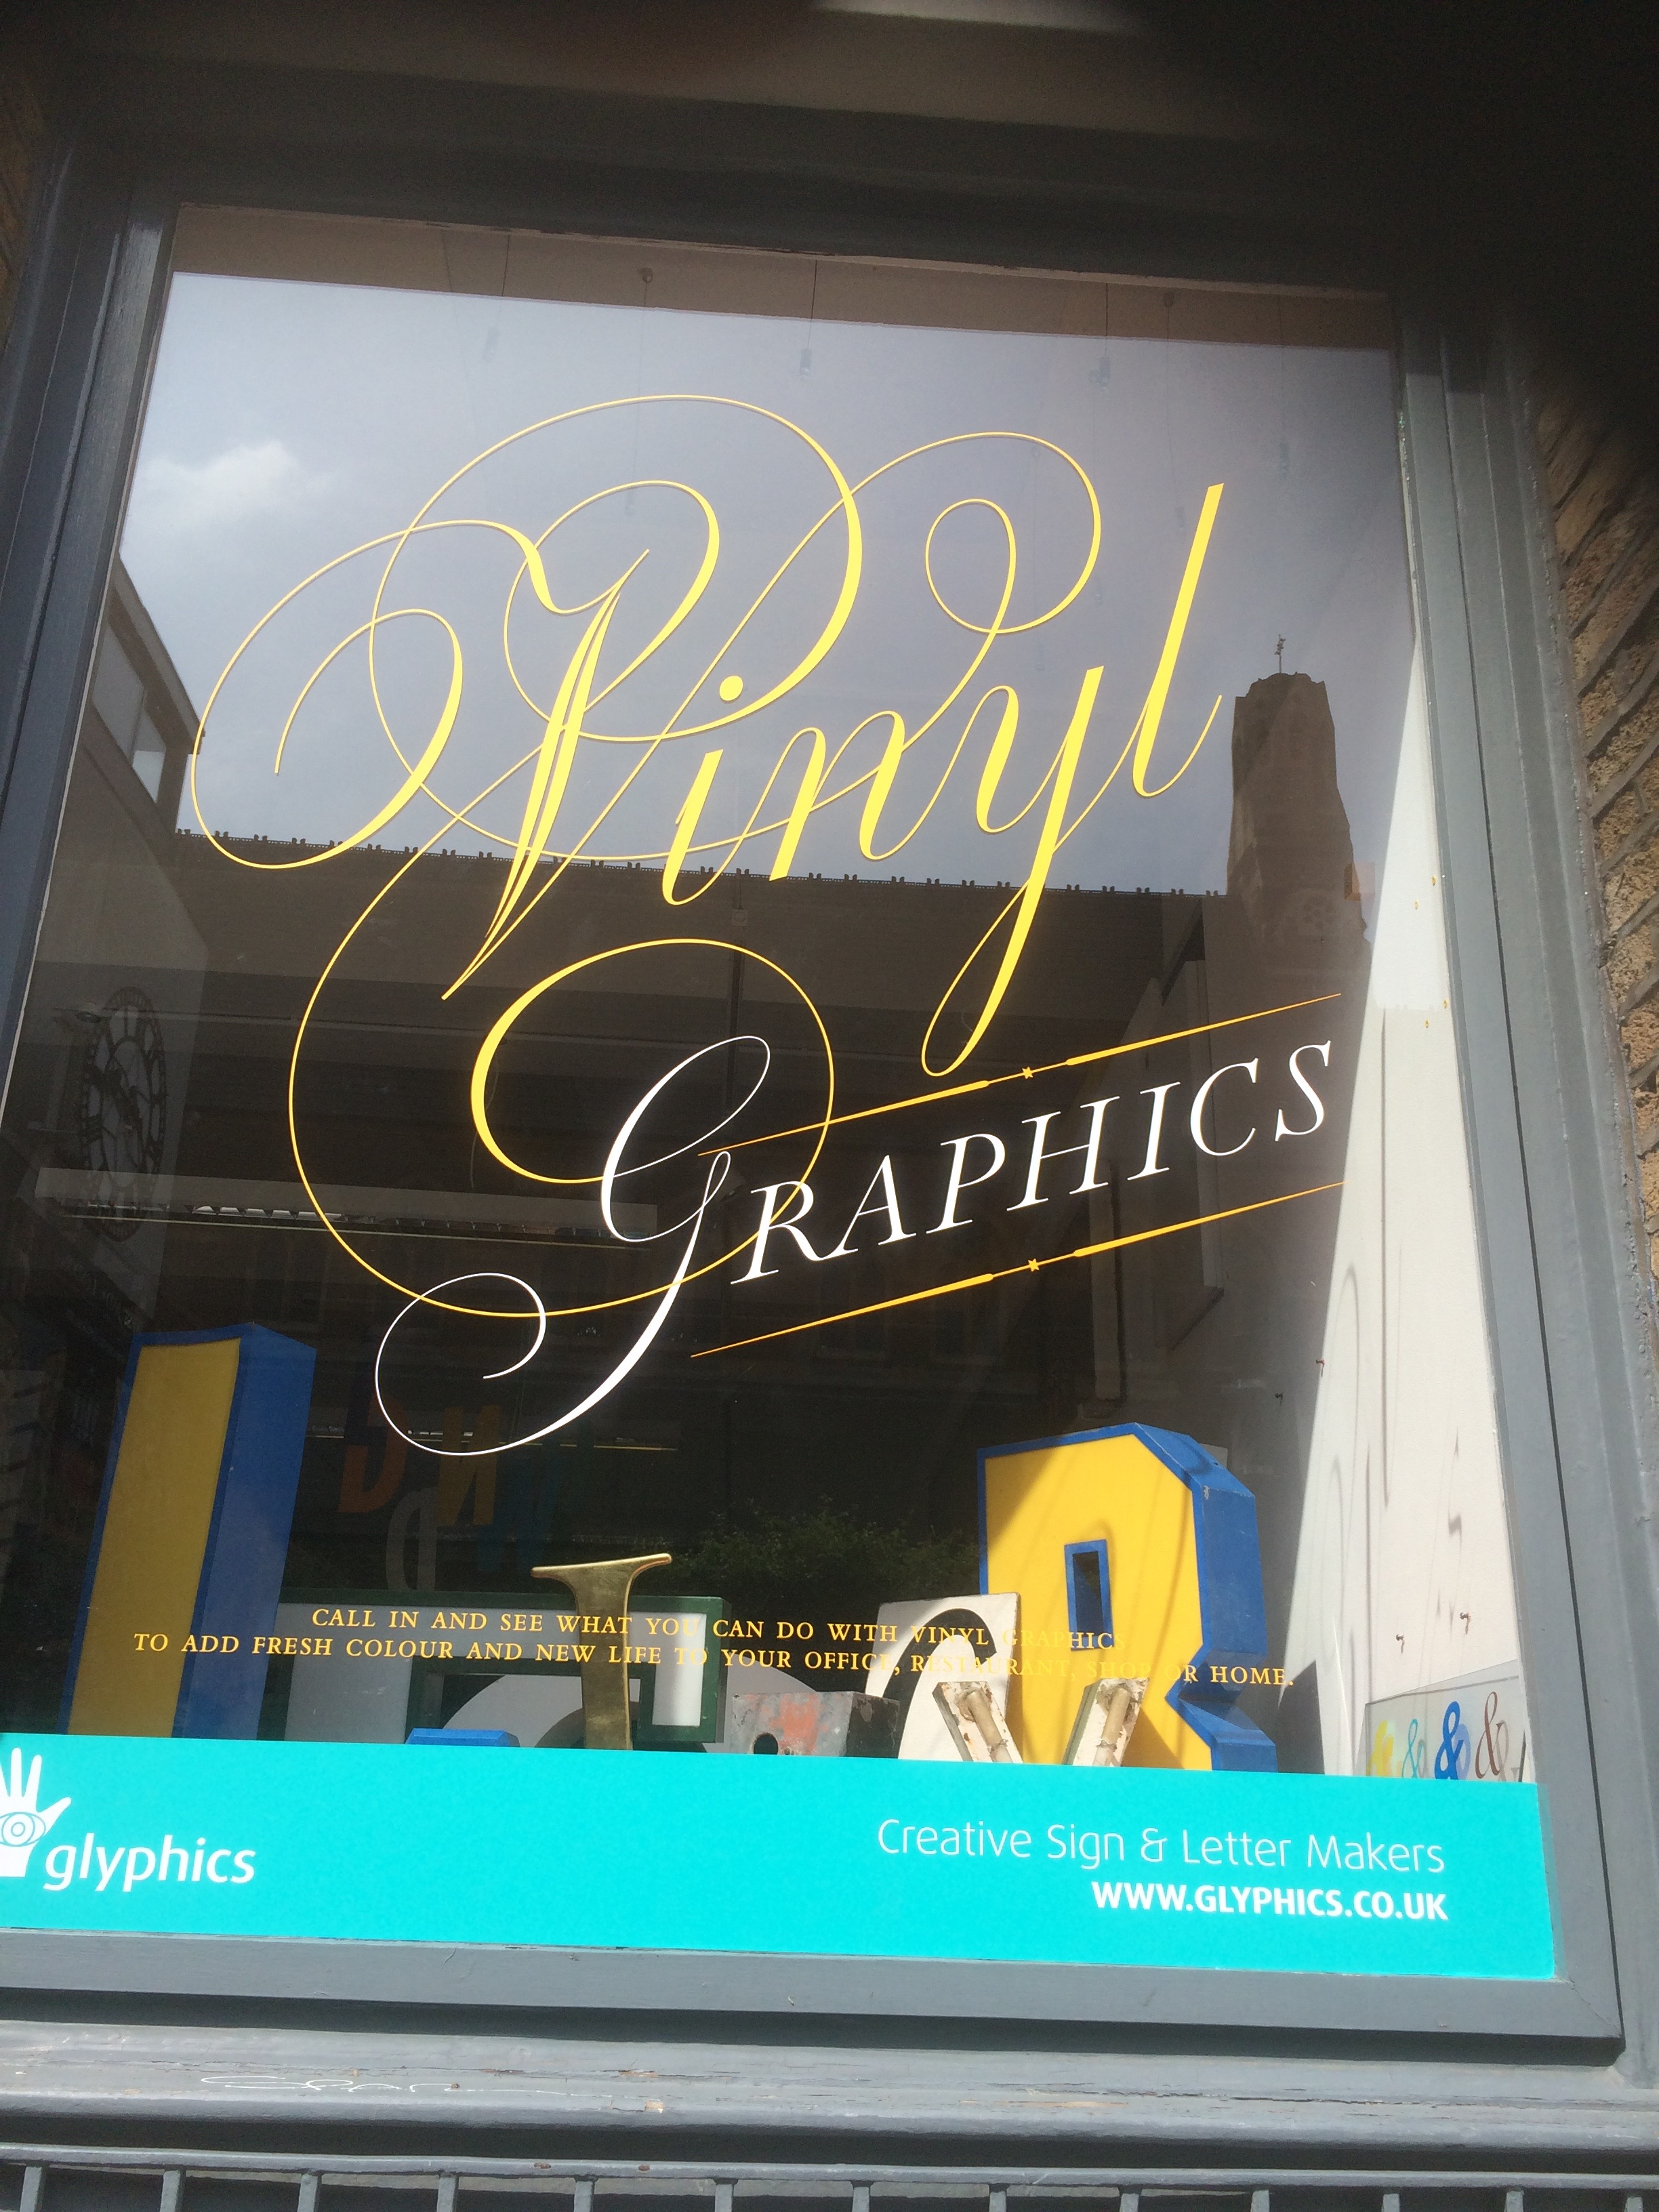 Another example of some beautiful window lettering